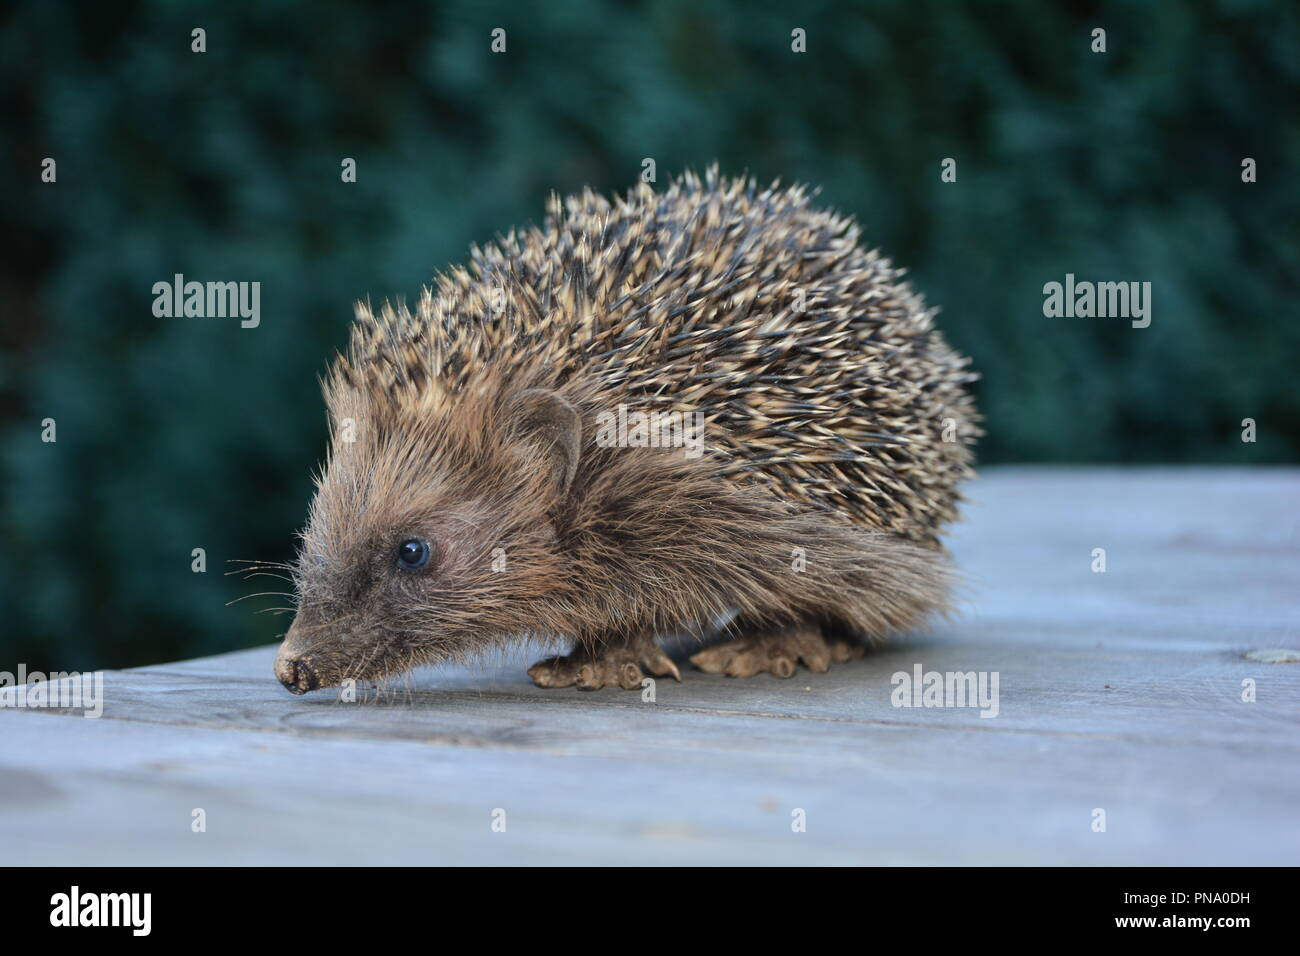 Hedgehog from the side, sits  on wood in front of green nature - Stock Image